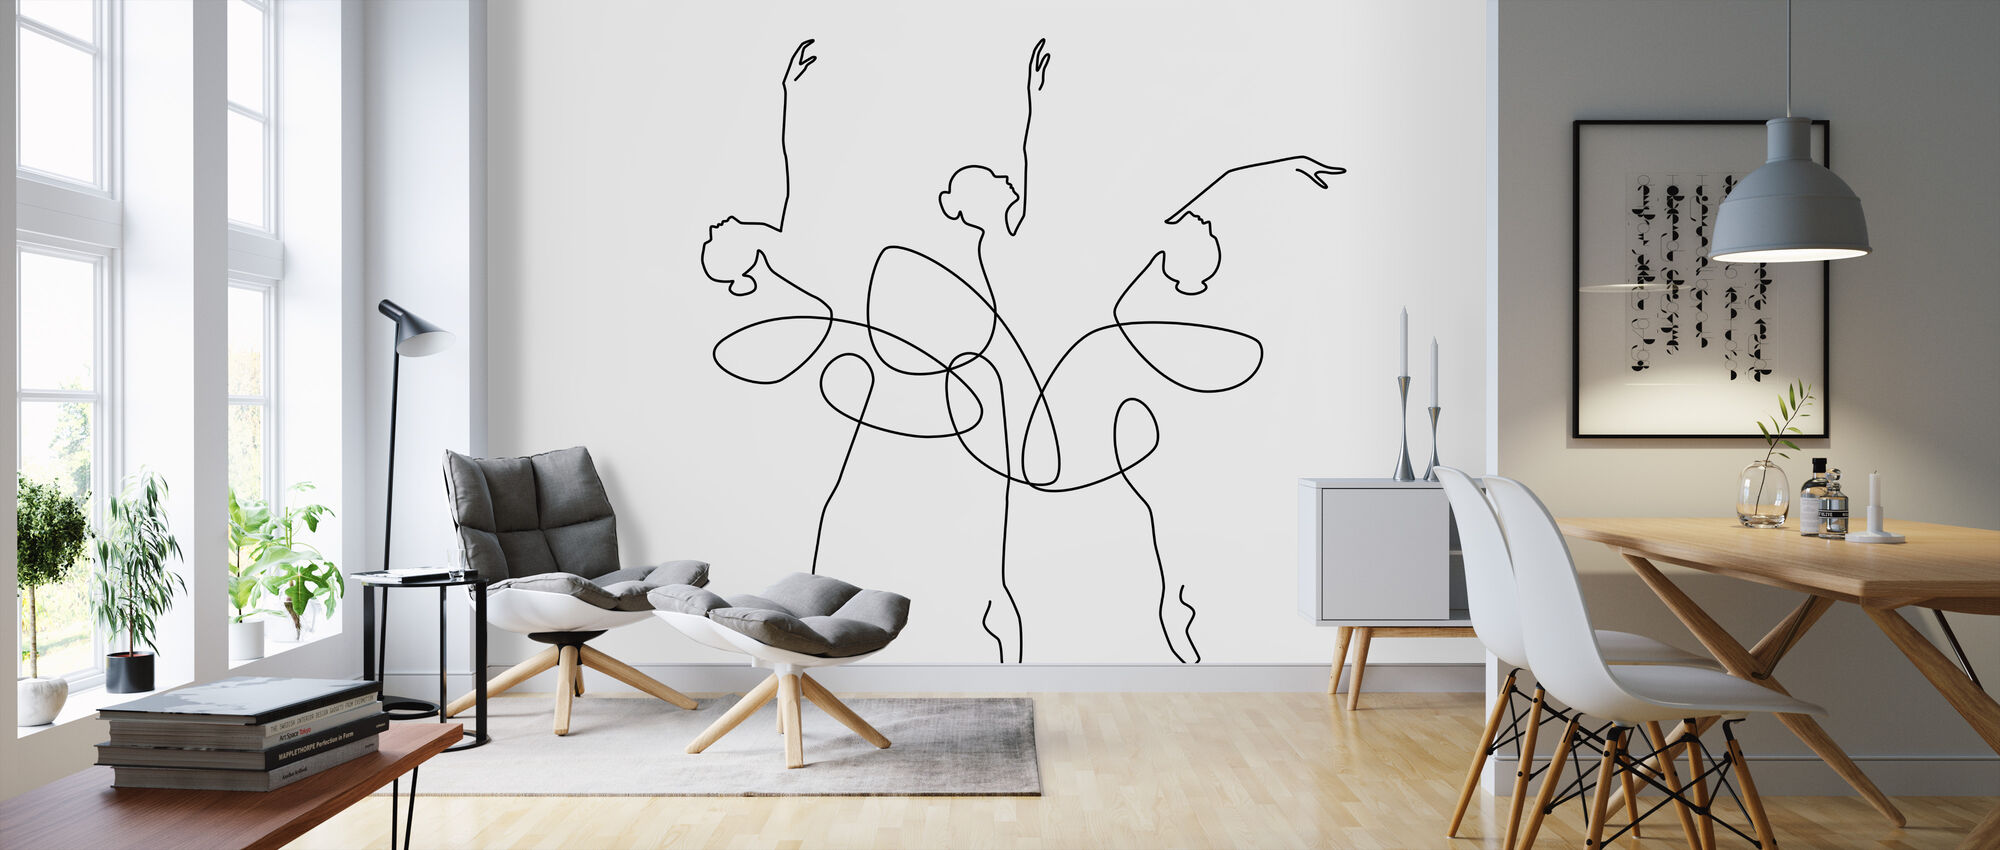 Ballet x 3 - Wallpaper - Living Room